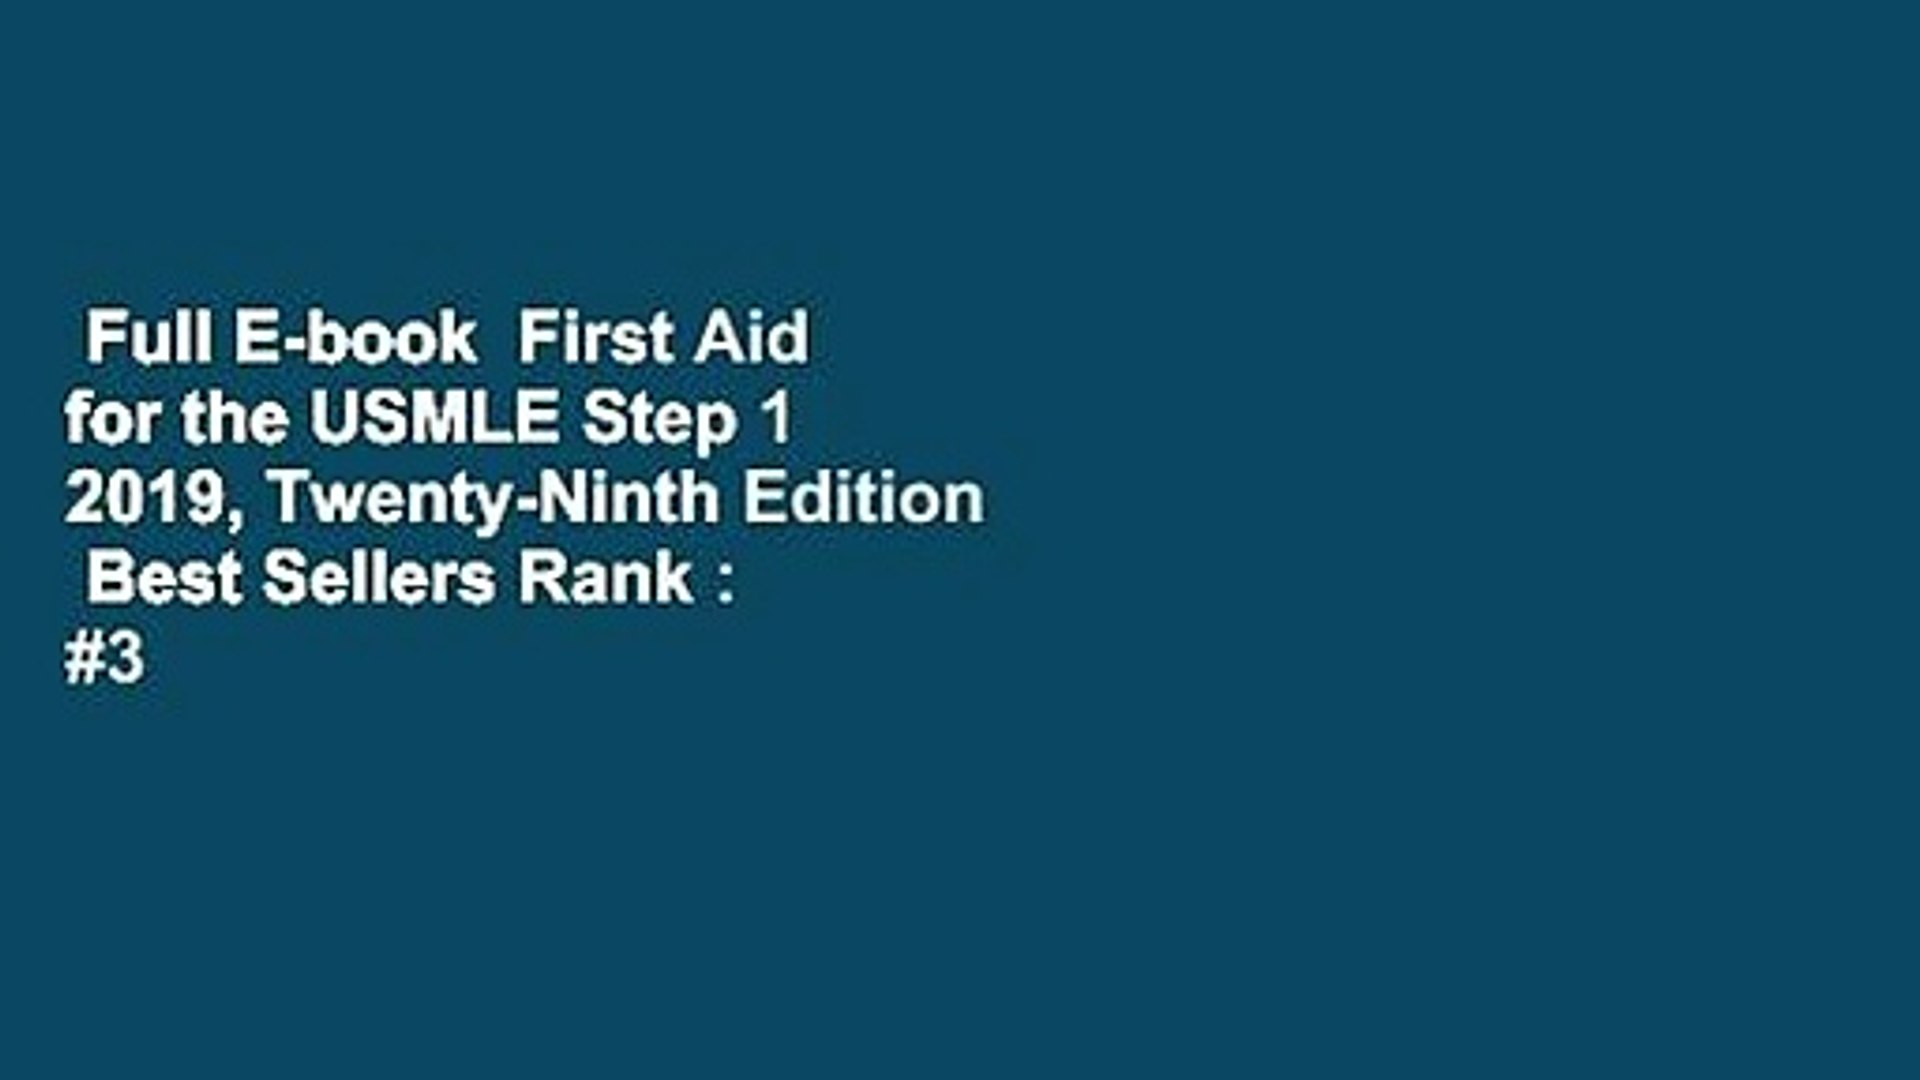 Full E-book First Aid for the USMLE Step 1 2019, Twenty-Ninth Edition Best  Sellers Rank : #3